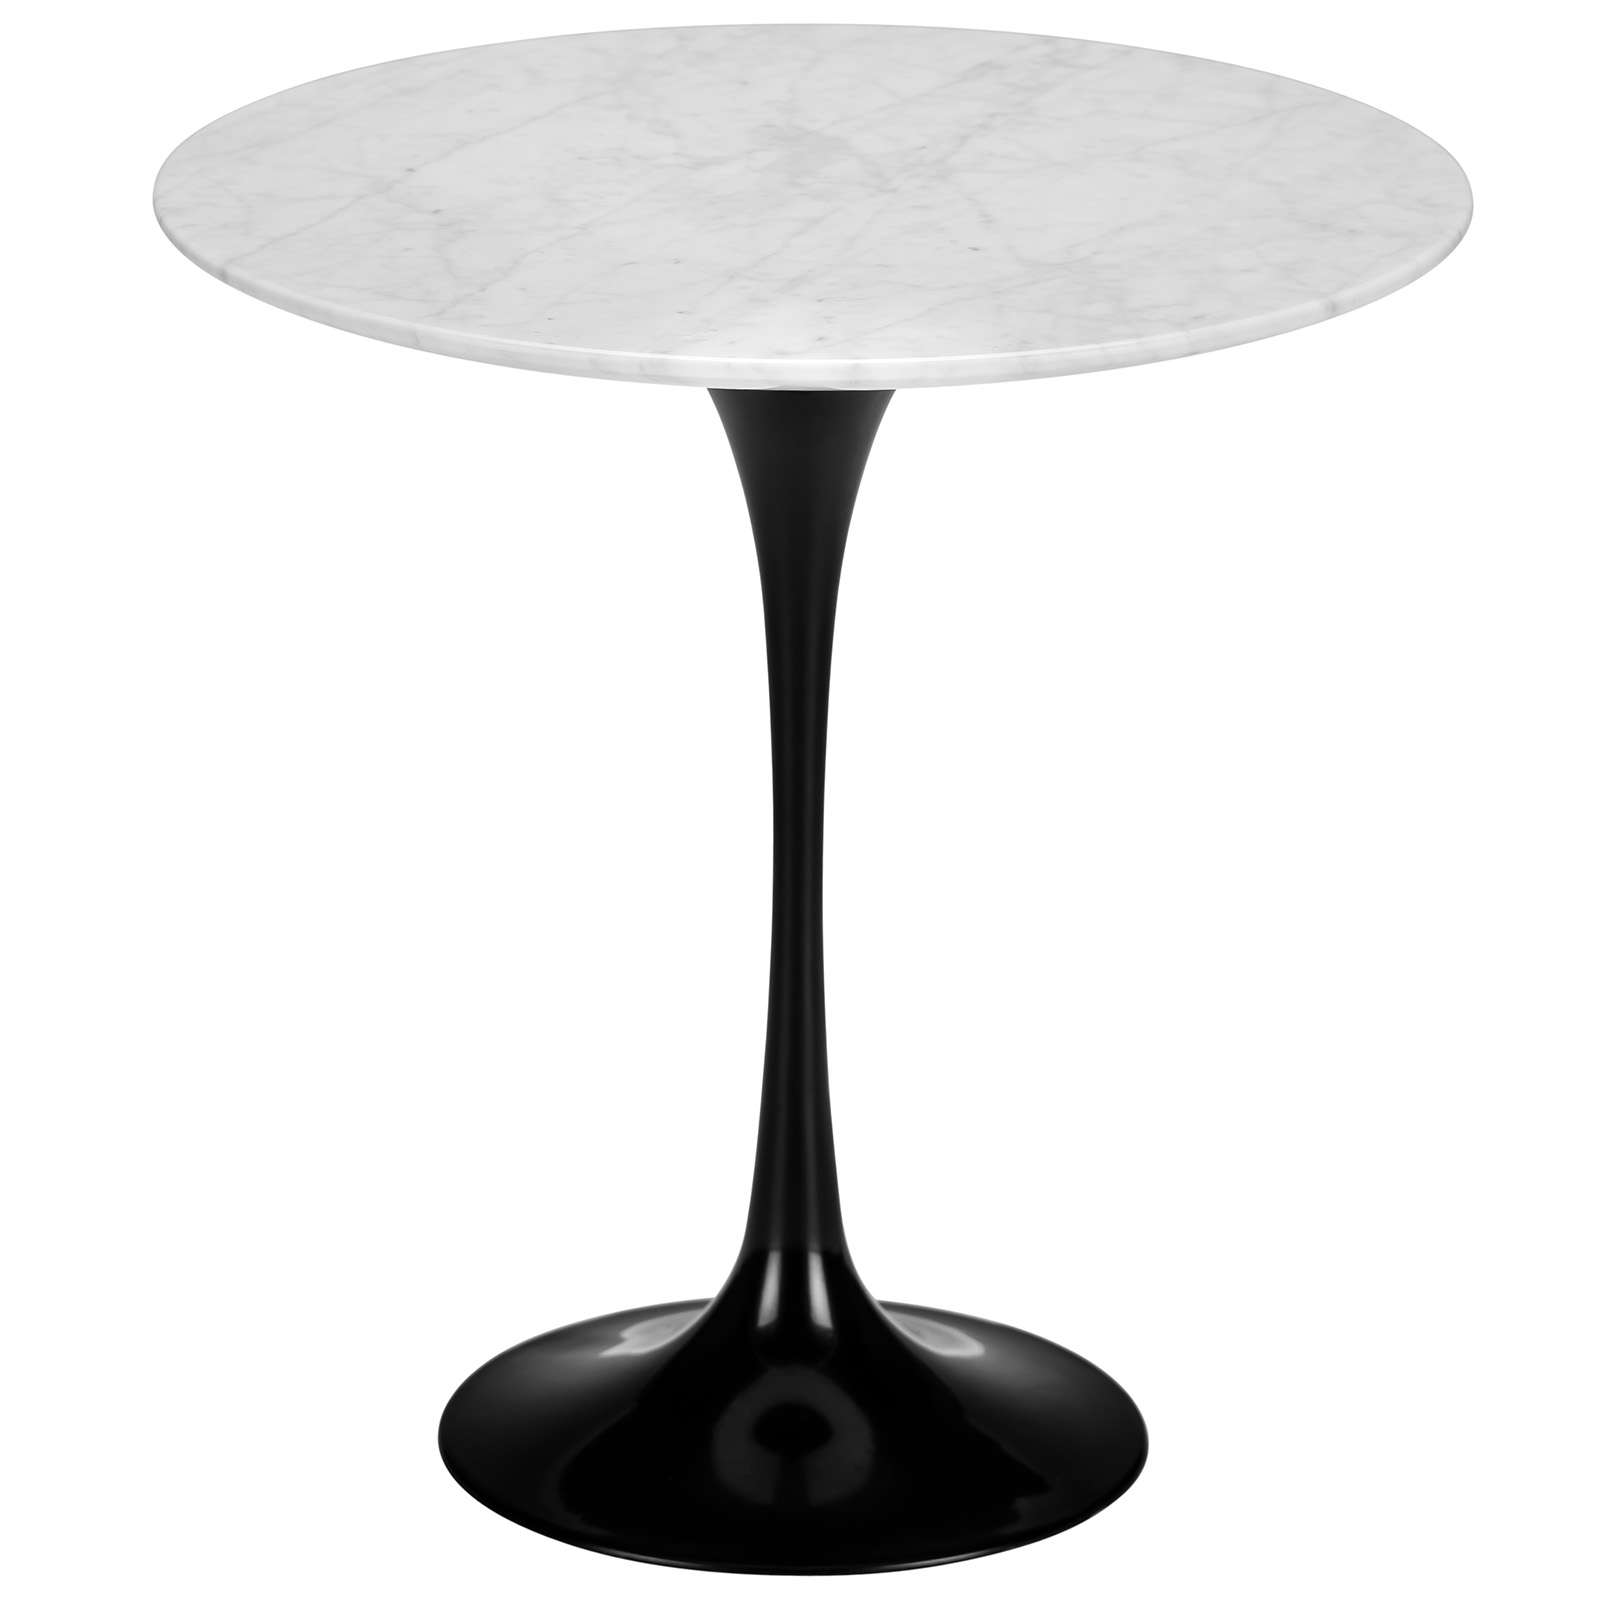 "Daisy 20"" Marble Side Table in Black Base"